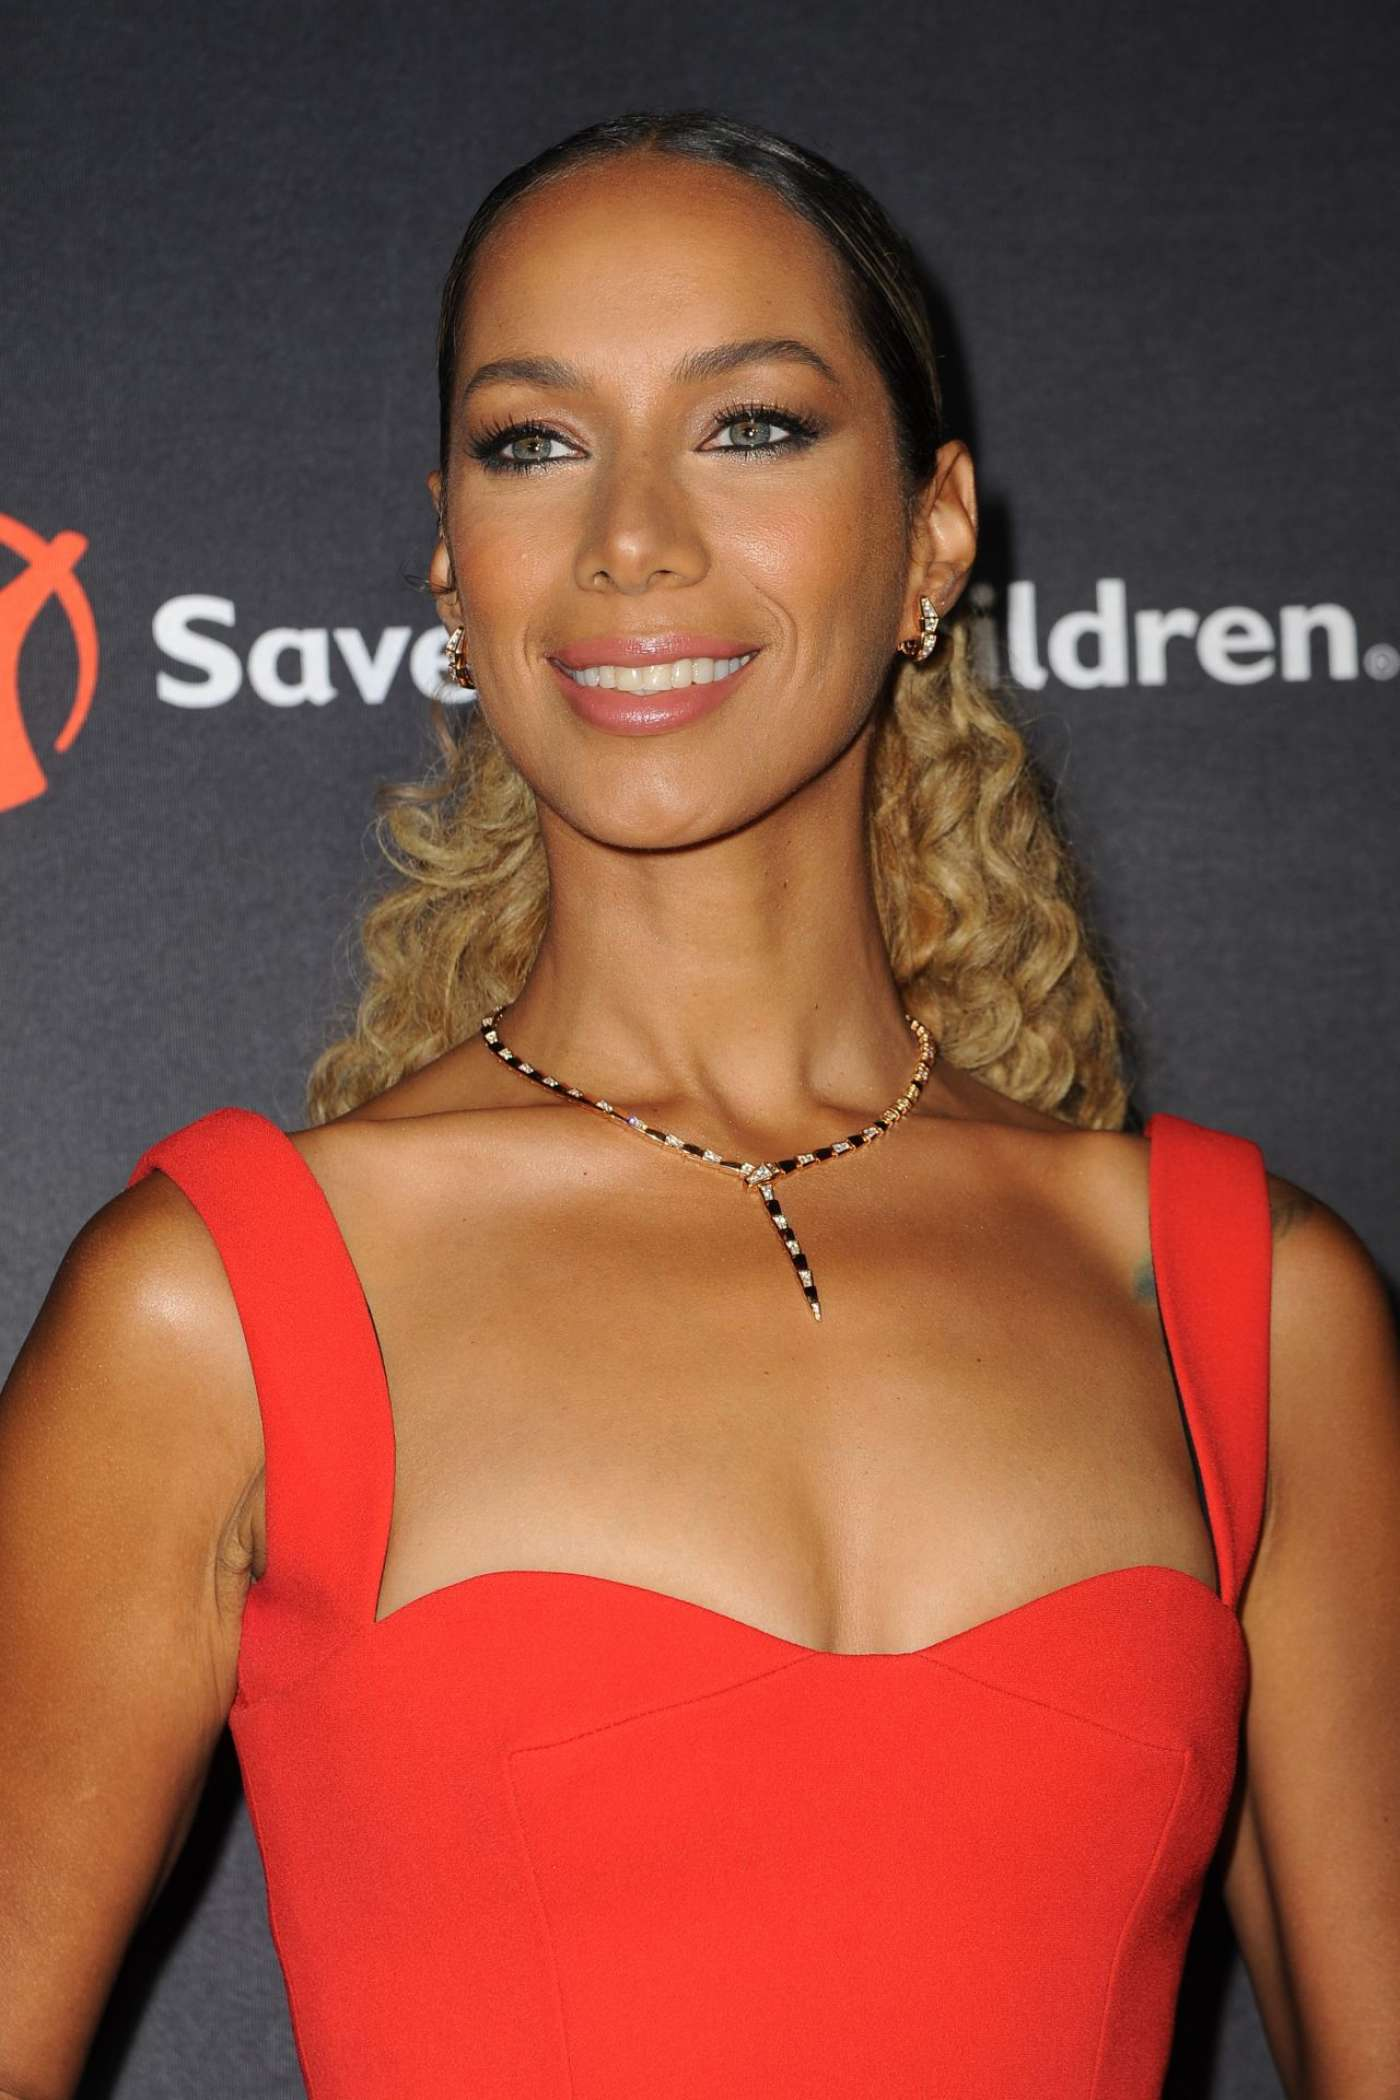 Leona Lewis - 5th Annual 'Save the Children Illumination' Gala in NY